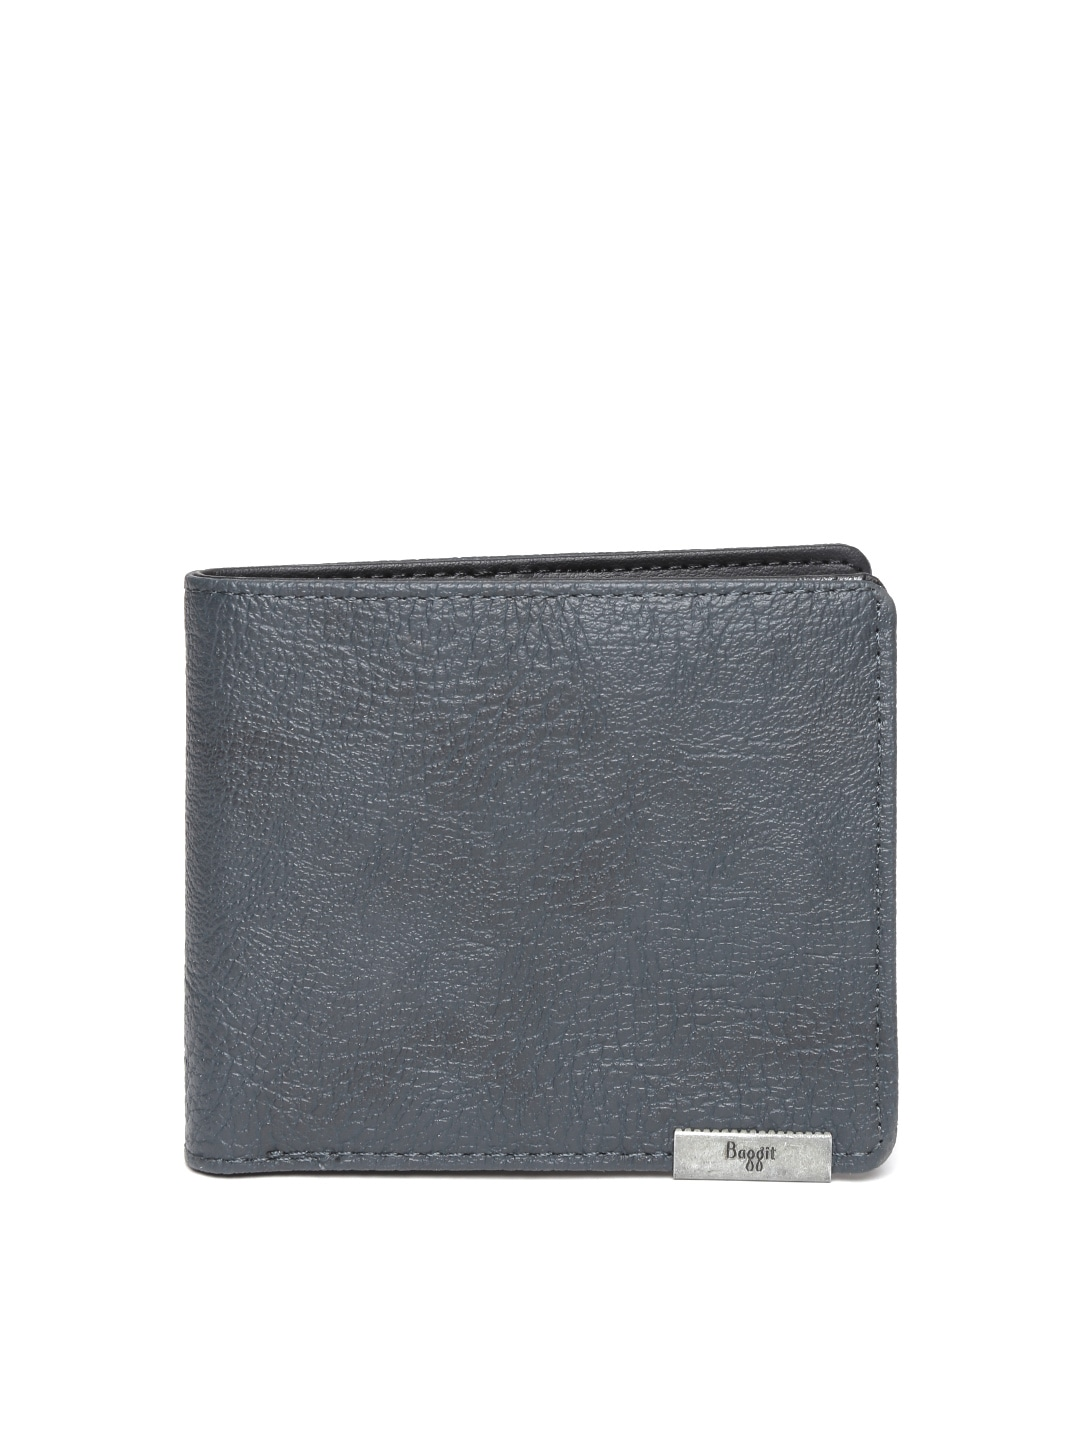 2b09aa880e66 Best Wallet for Men in India - Baggit Men Navy Solid Two Fold Wallet Myntra  Deal